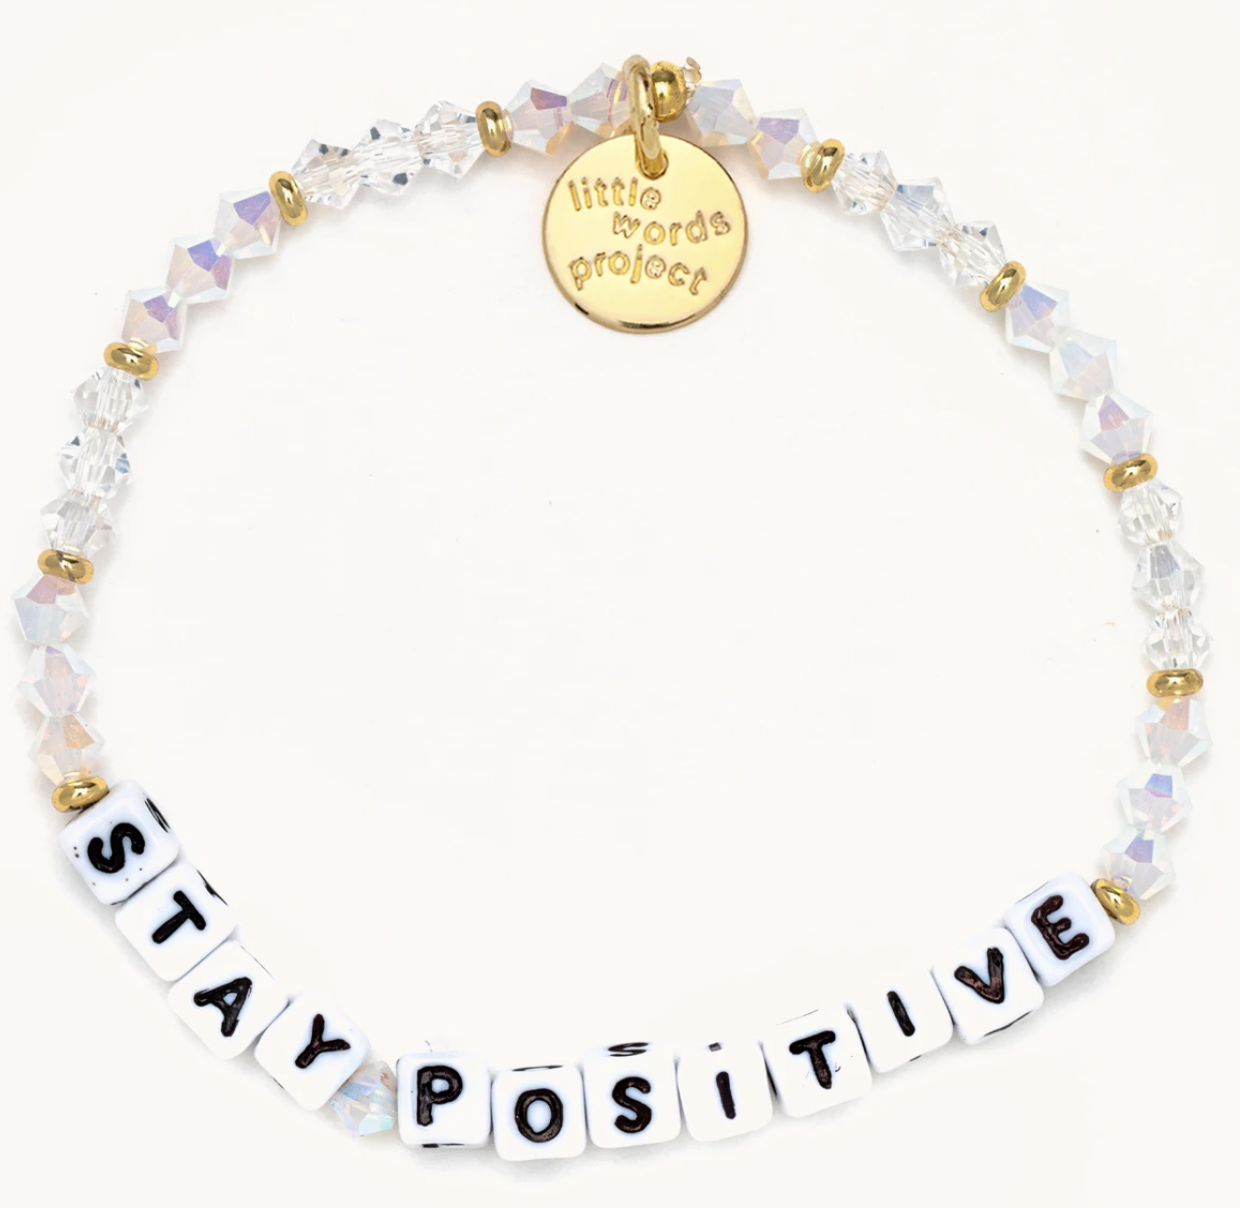 Little Words Project Stay Positive-Icy-White